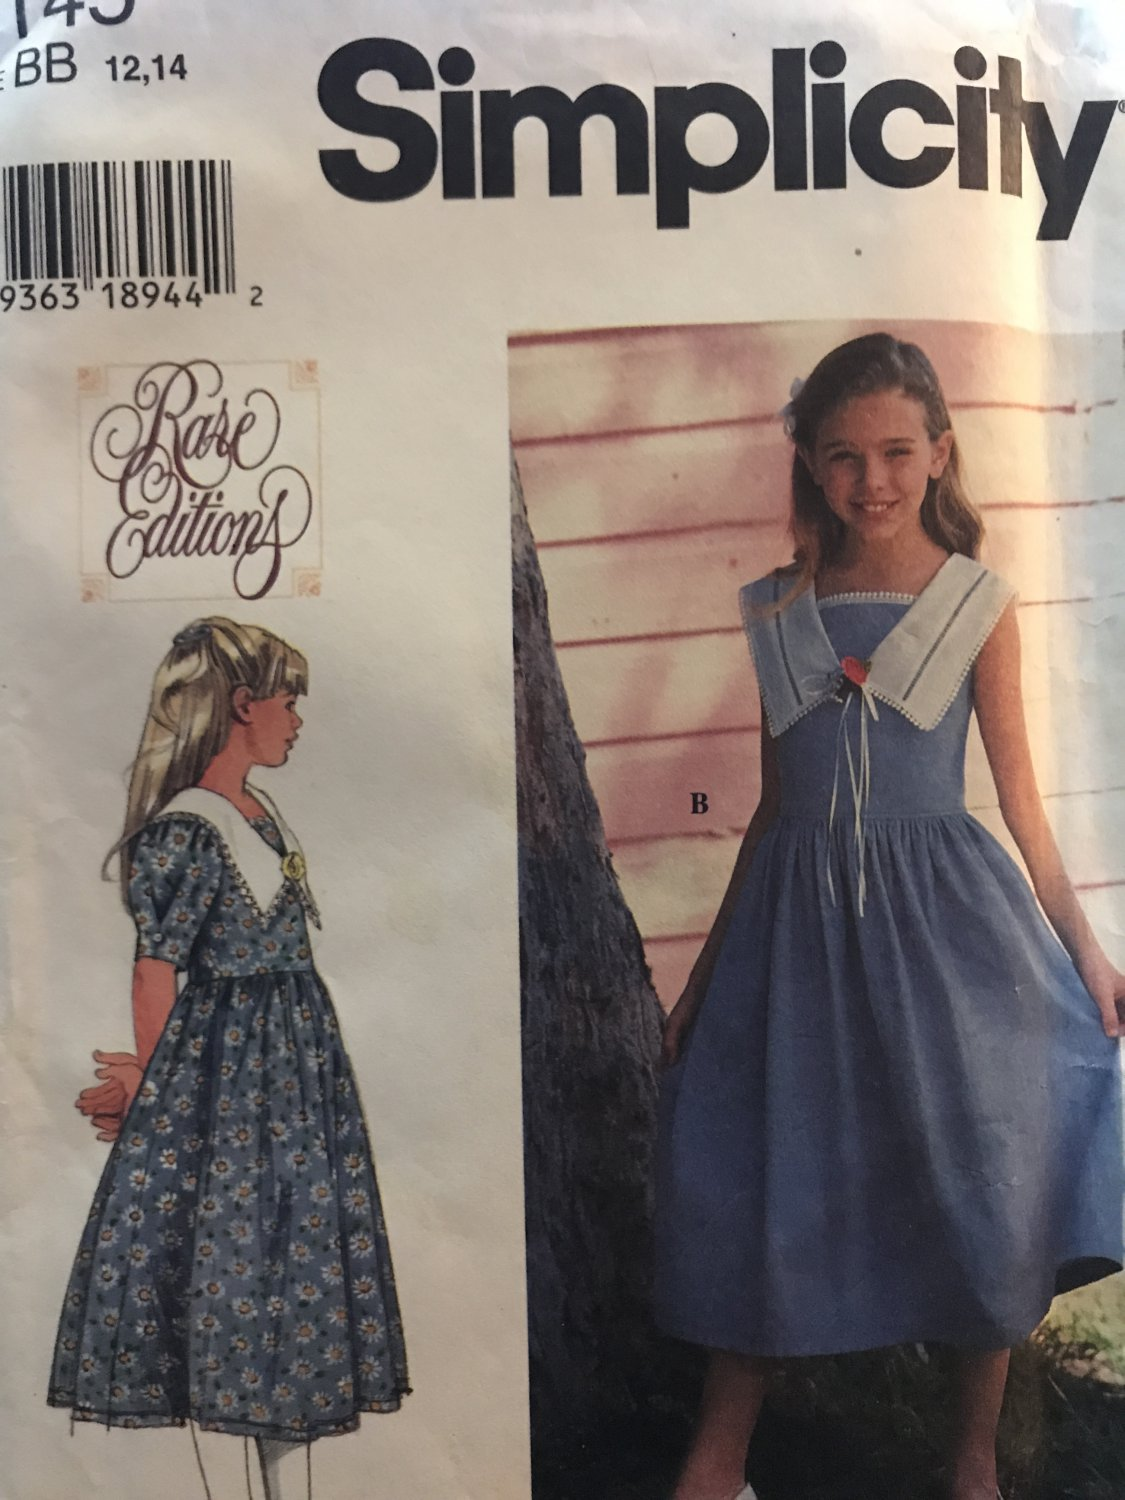 Simplicity 7145 Girls' Dress with Sleeve variations, front inset size 12, 14 Sewing Pattern